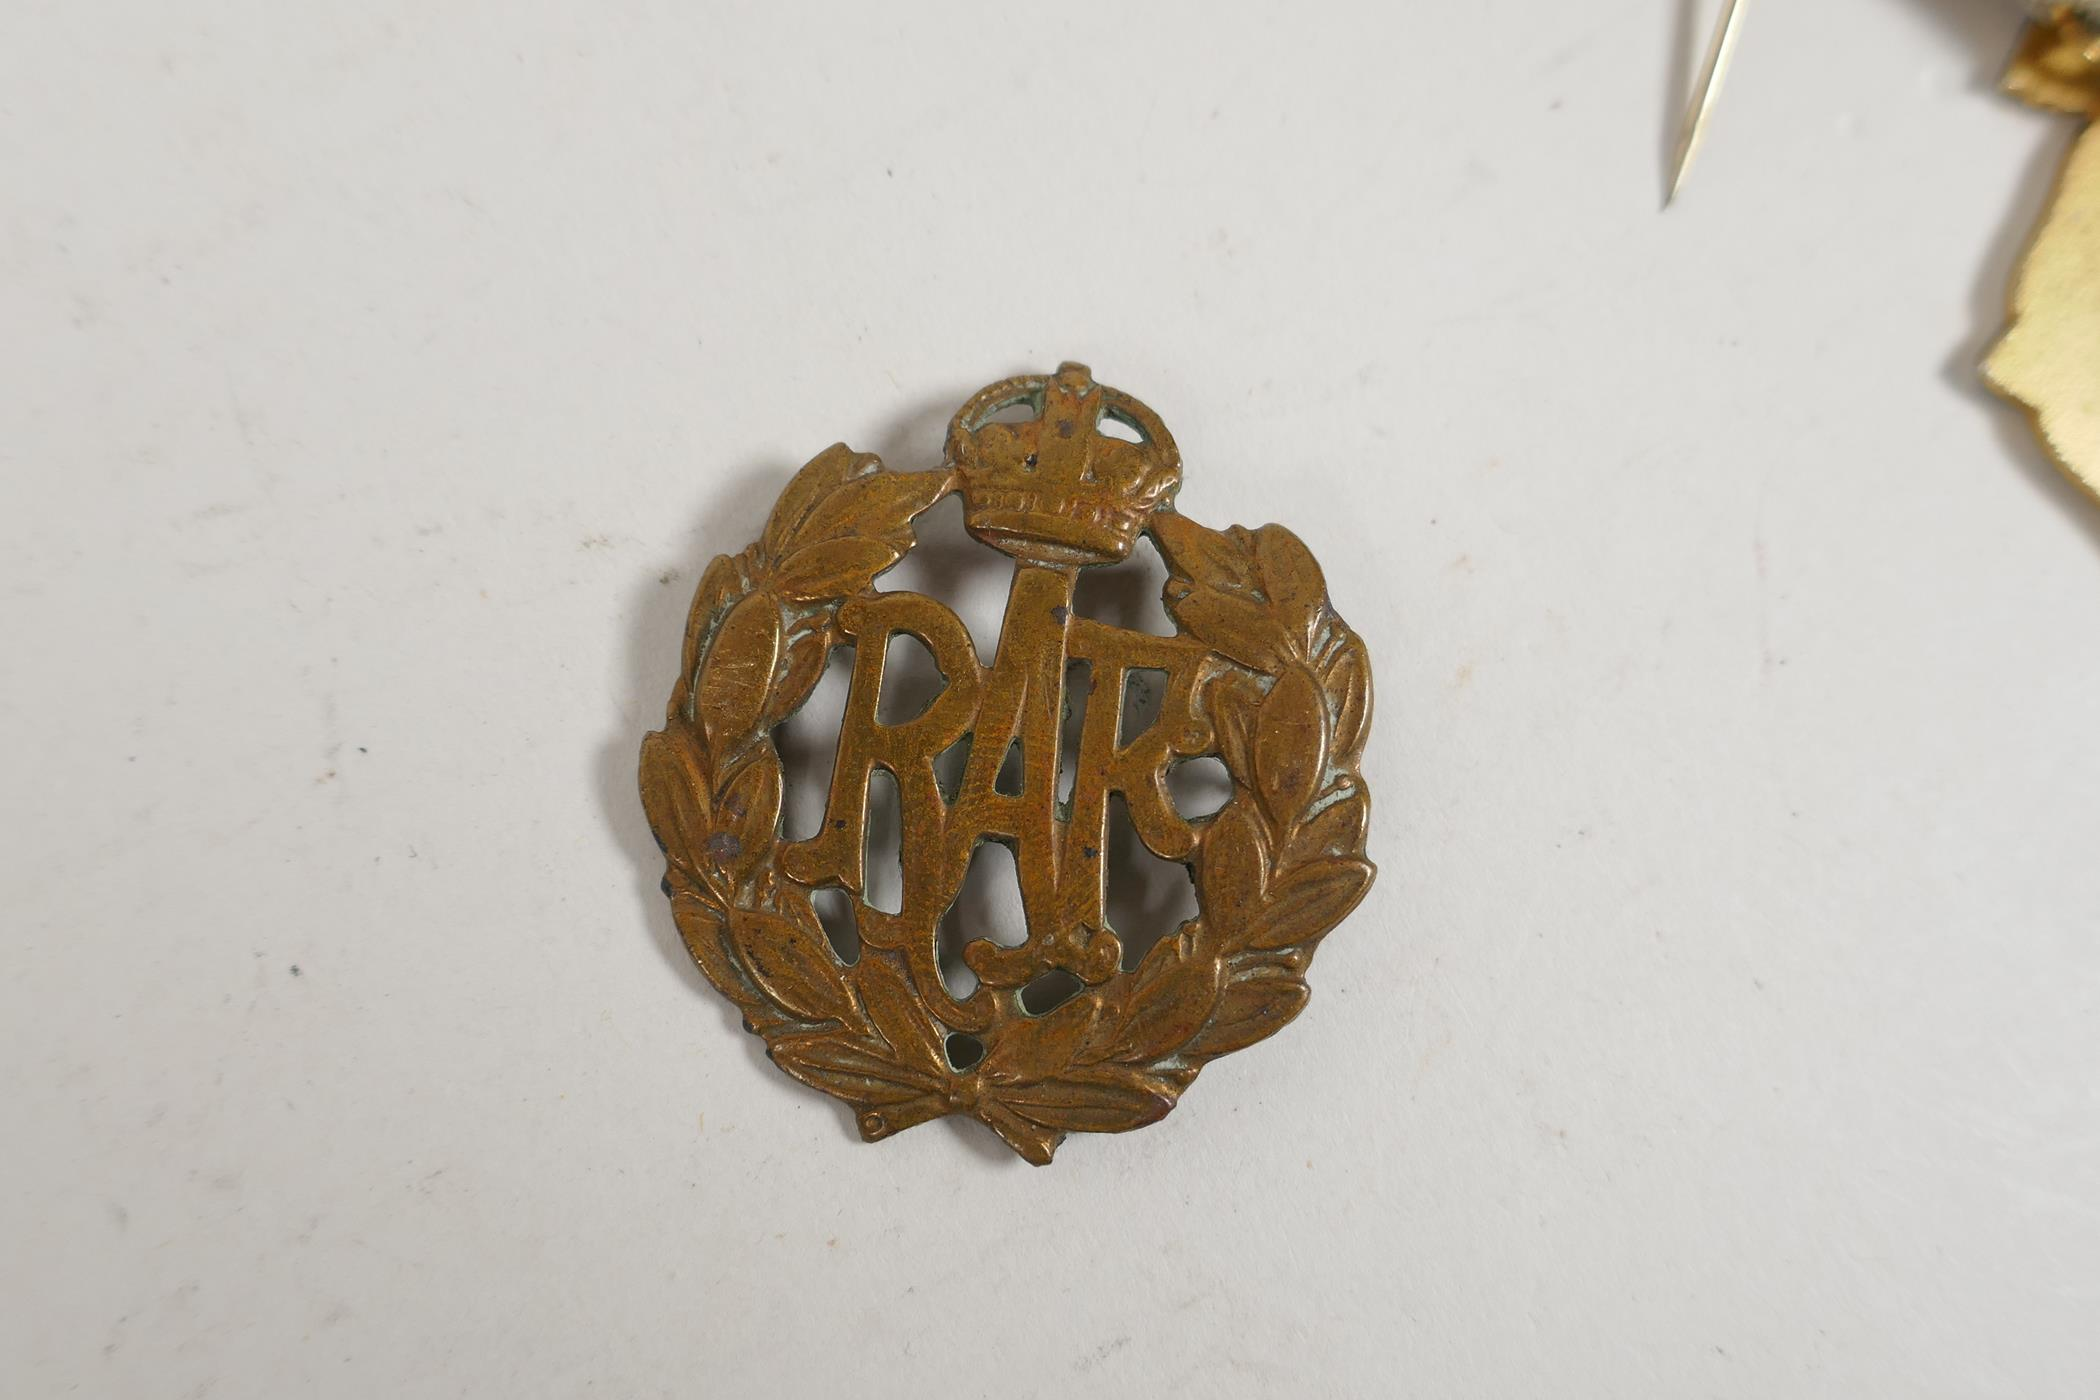 A bronze medallion commemorating Andreas Hofer together with masonic medals and an RAF cap badge, - Image 8 of 8